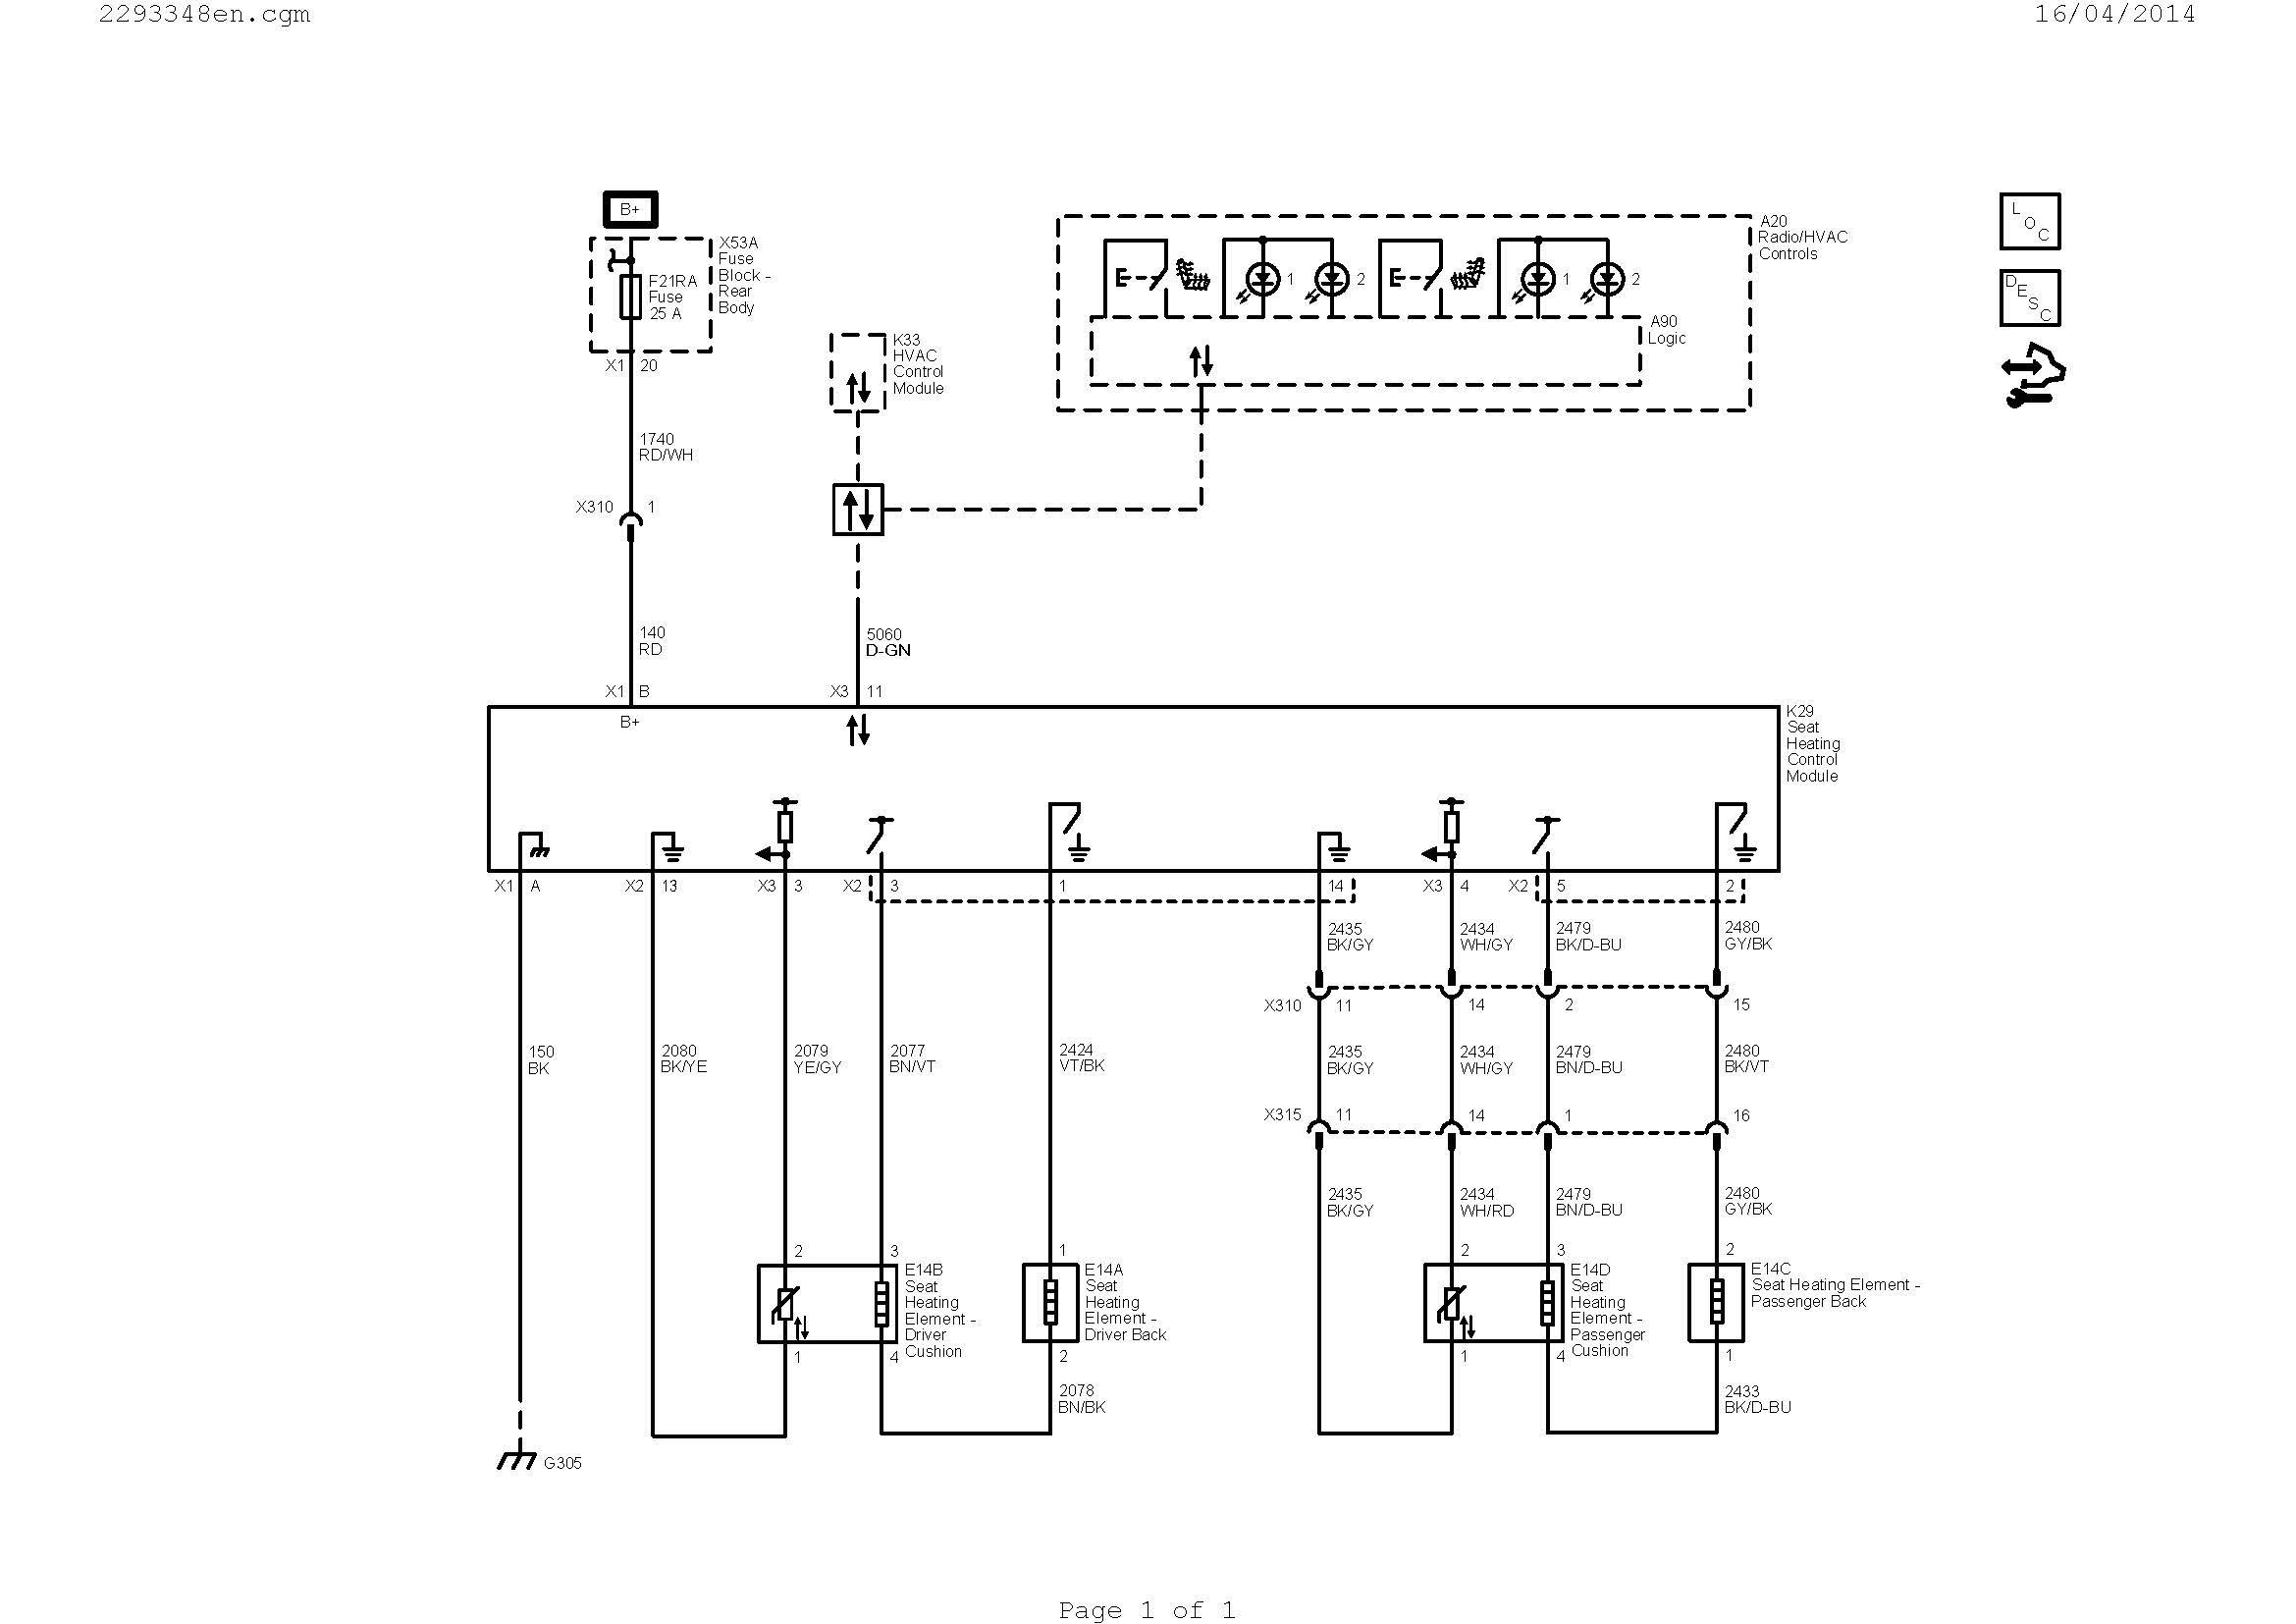 heating and cooling thermostat wiring diagram Download-air conditioner thermostat wiring diagram Download Wiring A Ac Thermostat Diagram New Wiring Diagram Ac 10-s